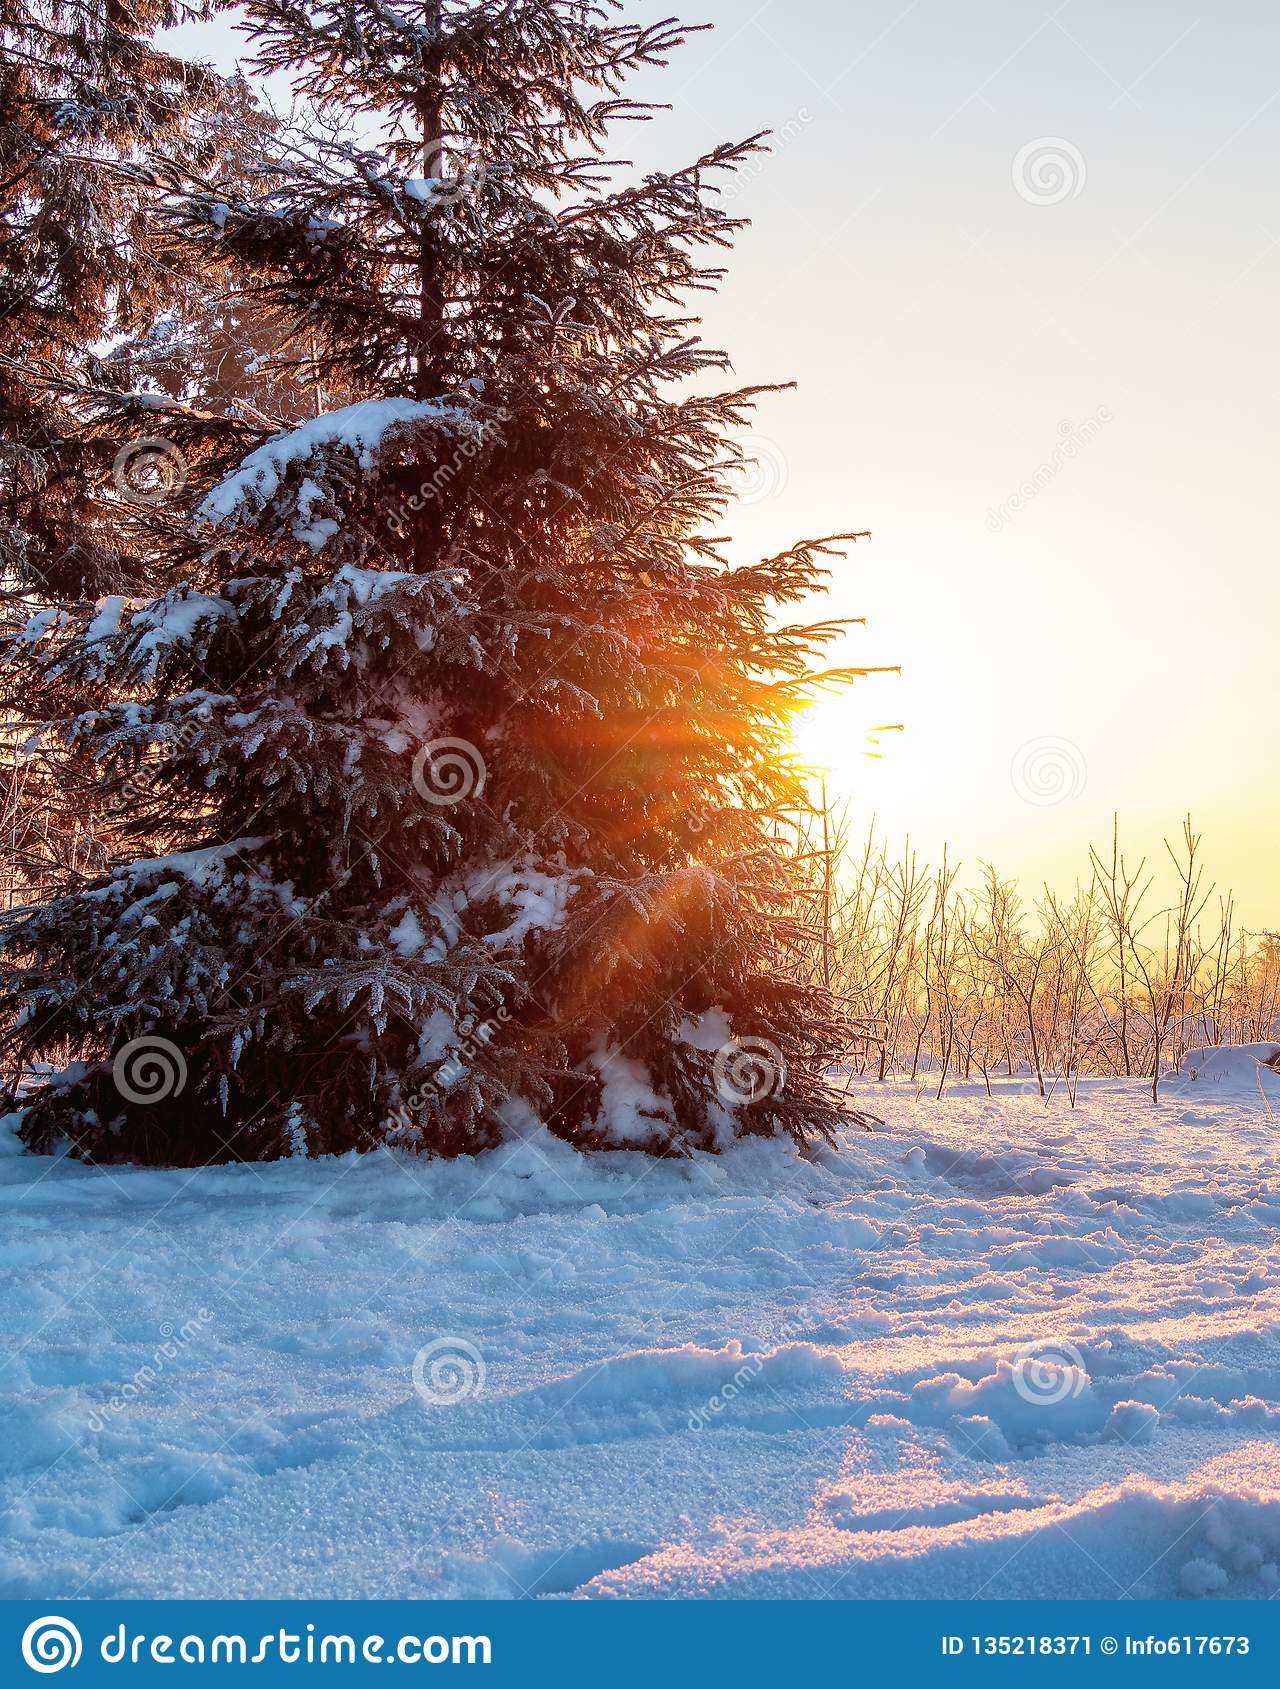 Sunrise behind a snow-covered fir tree.